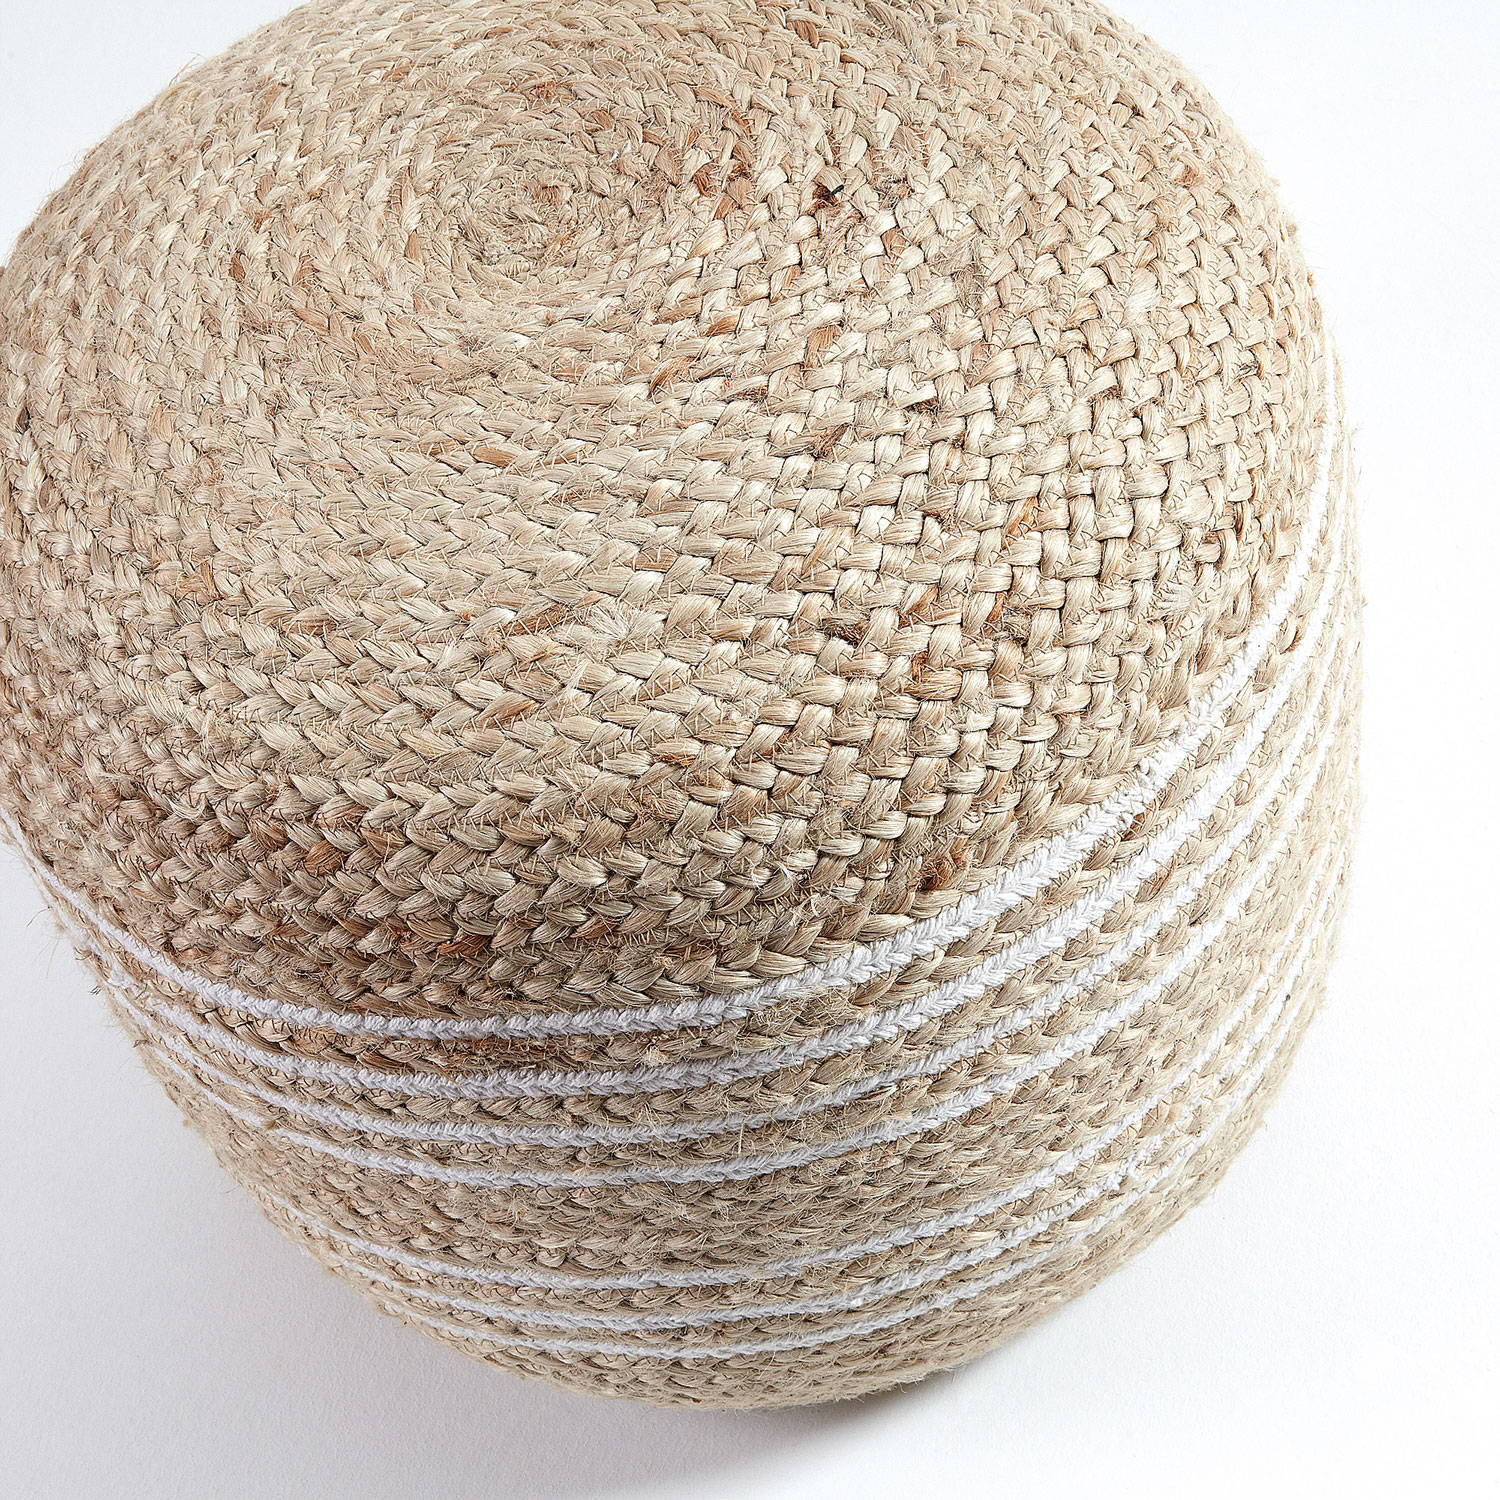 Puff Sam, juta natural, Ø45x45 cm